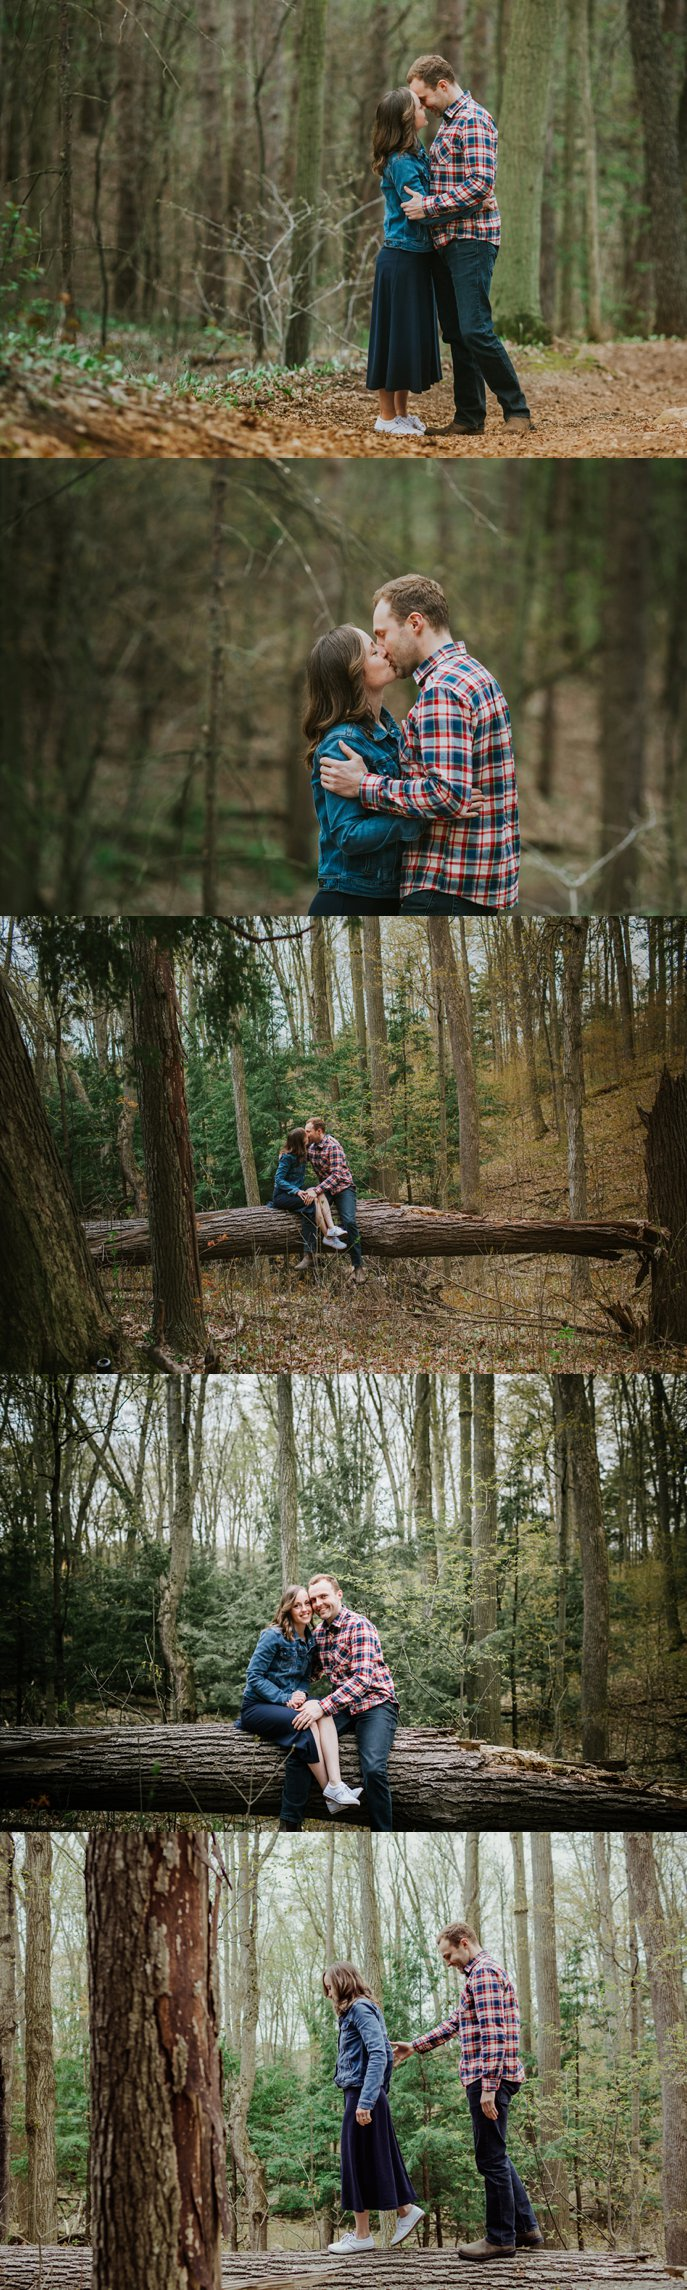 Kortright-centre-engagement-photography-LM-17.jpg